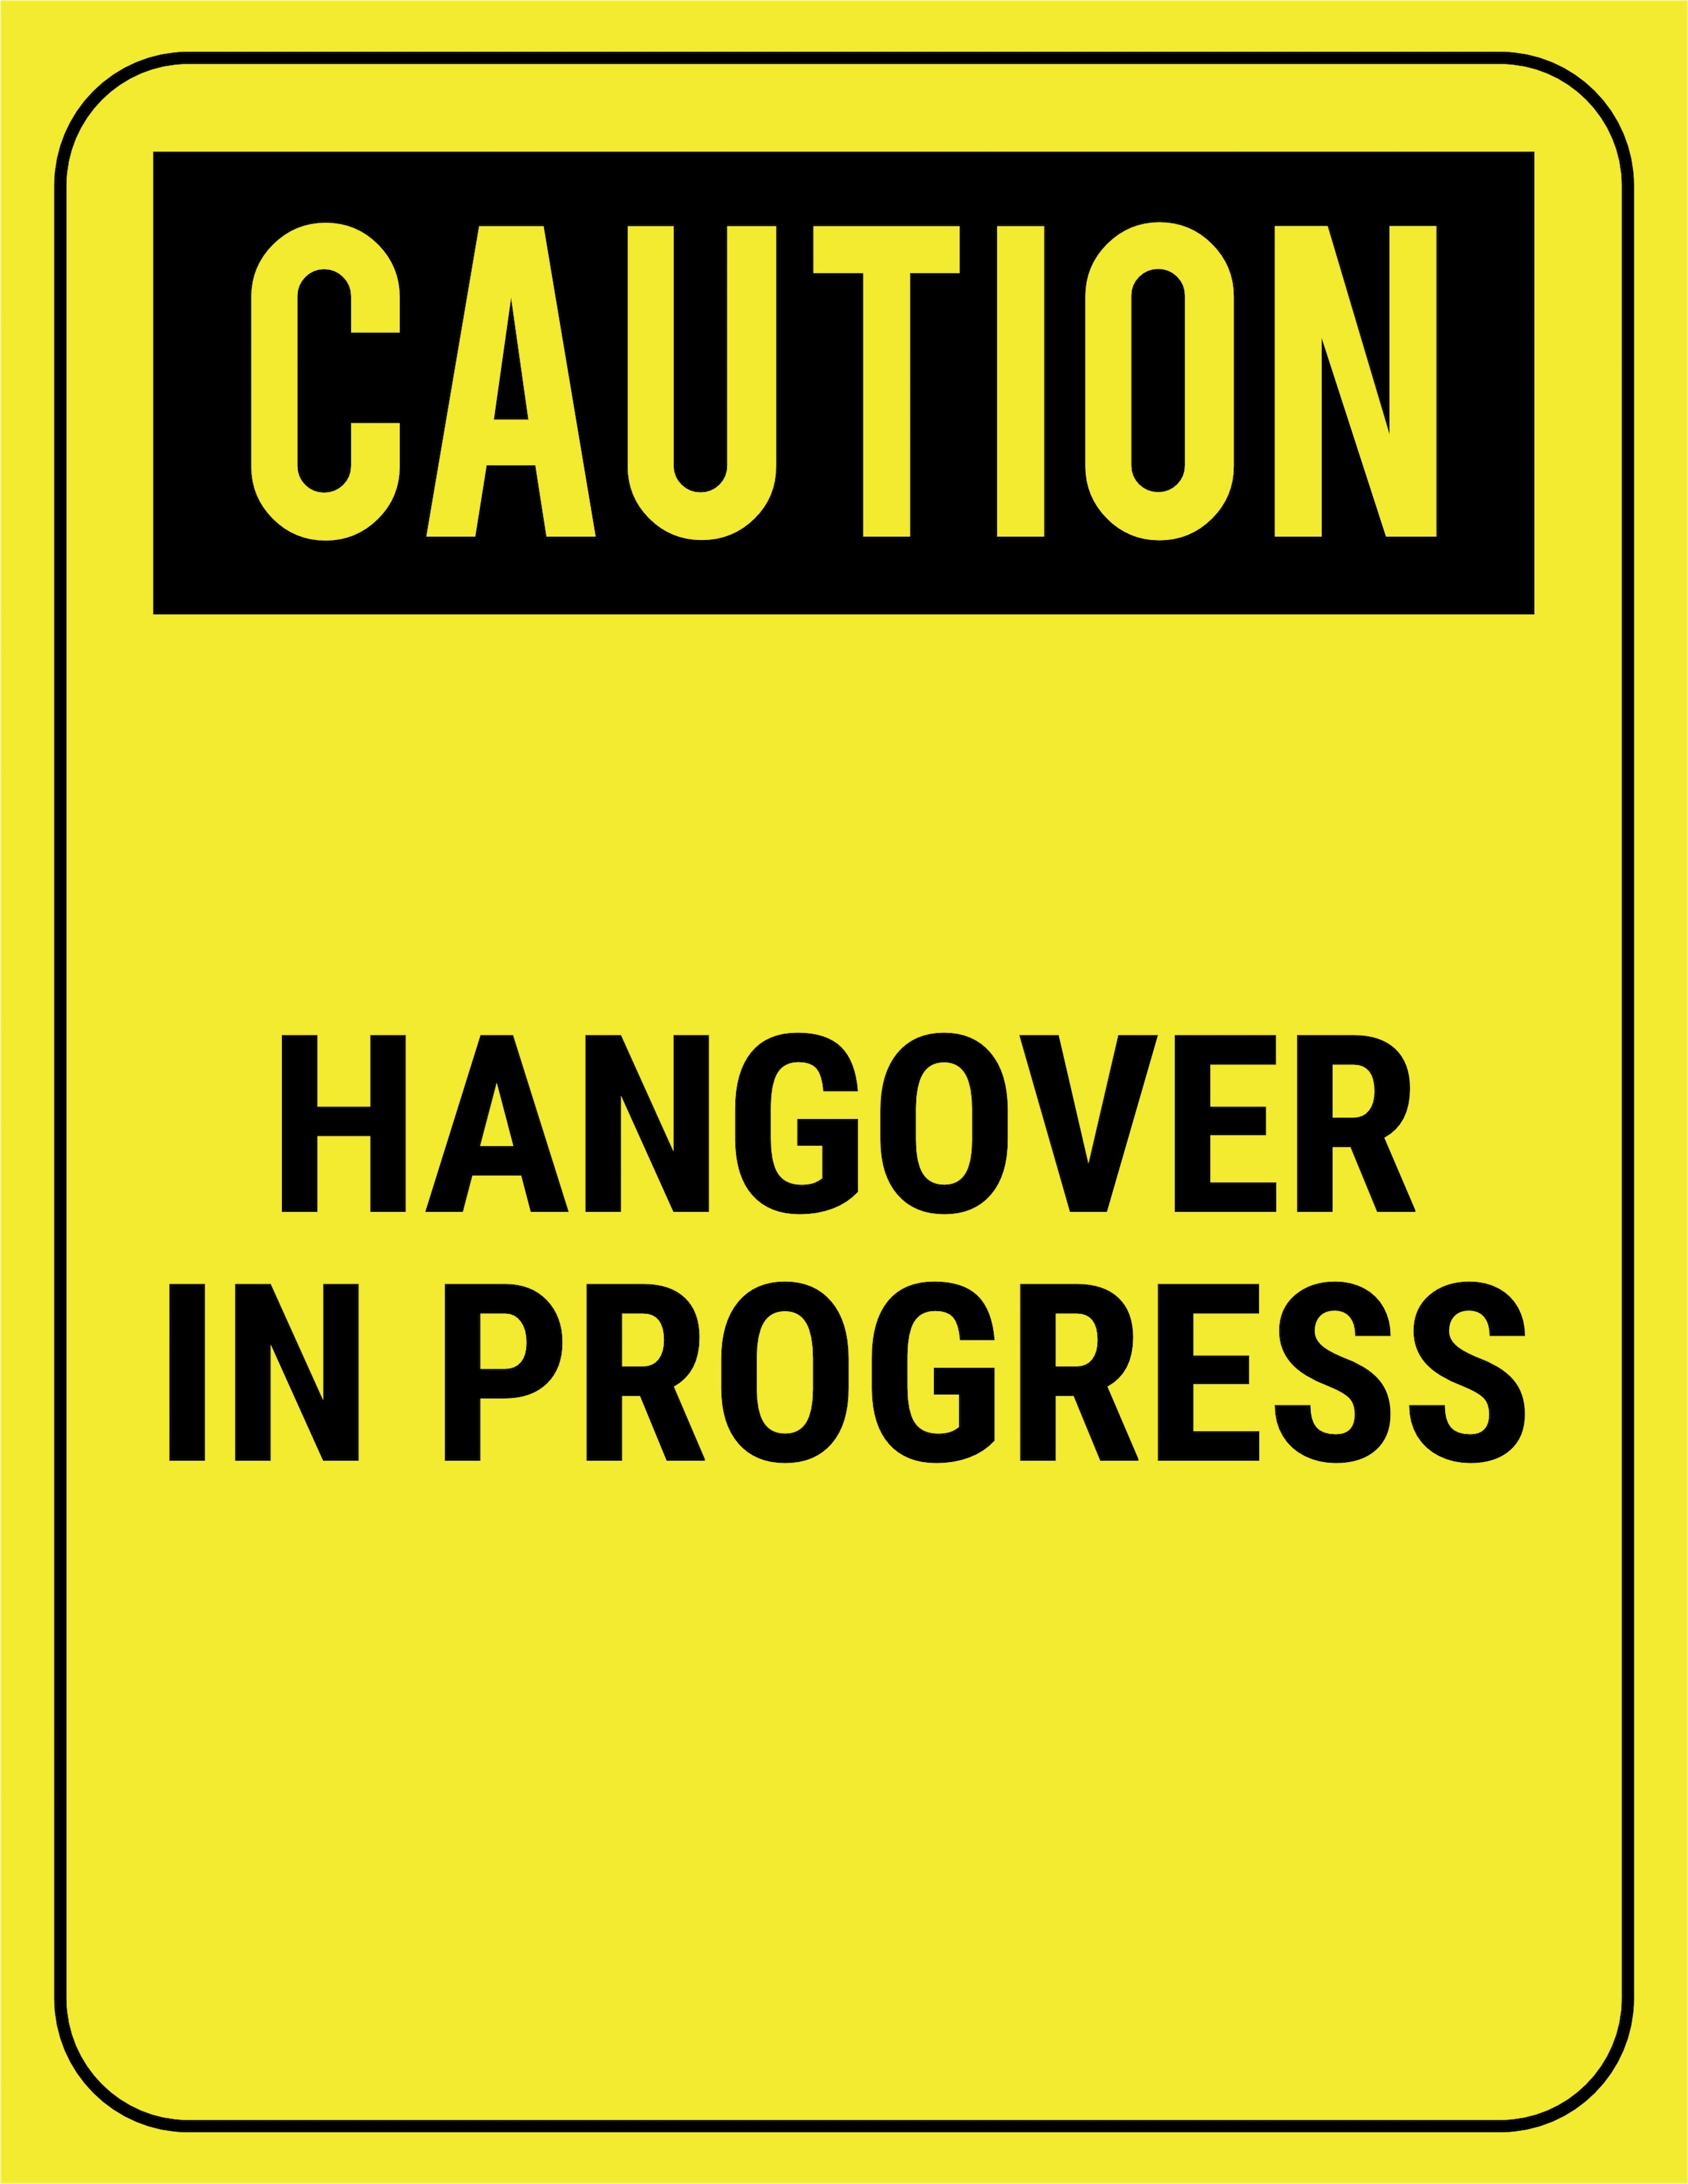 Funny Safety Signs To Download And Print - Free Printable Funny Signs